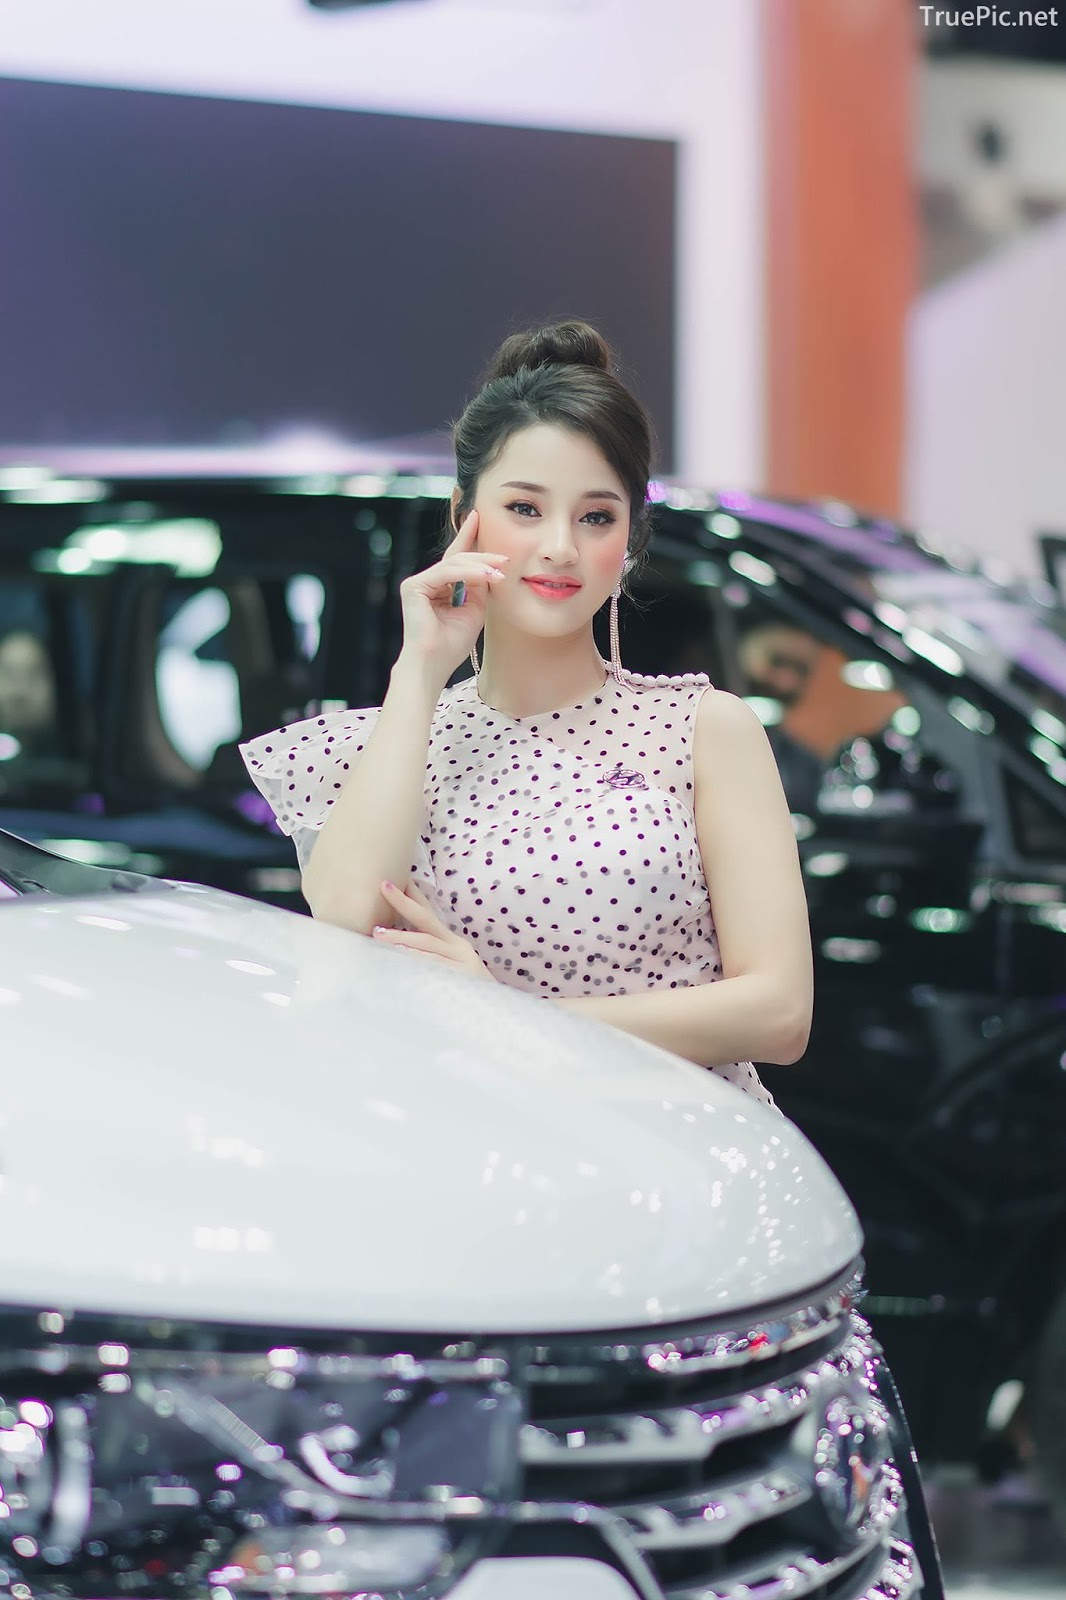 Image-Thailand-Racing-Girl-Various-Model-Thailand-International-Motor-Expo-2019- Picture-2